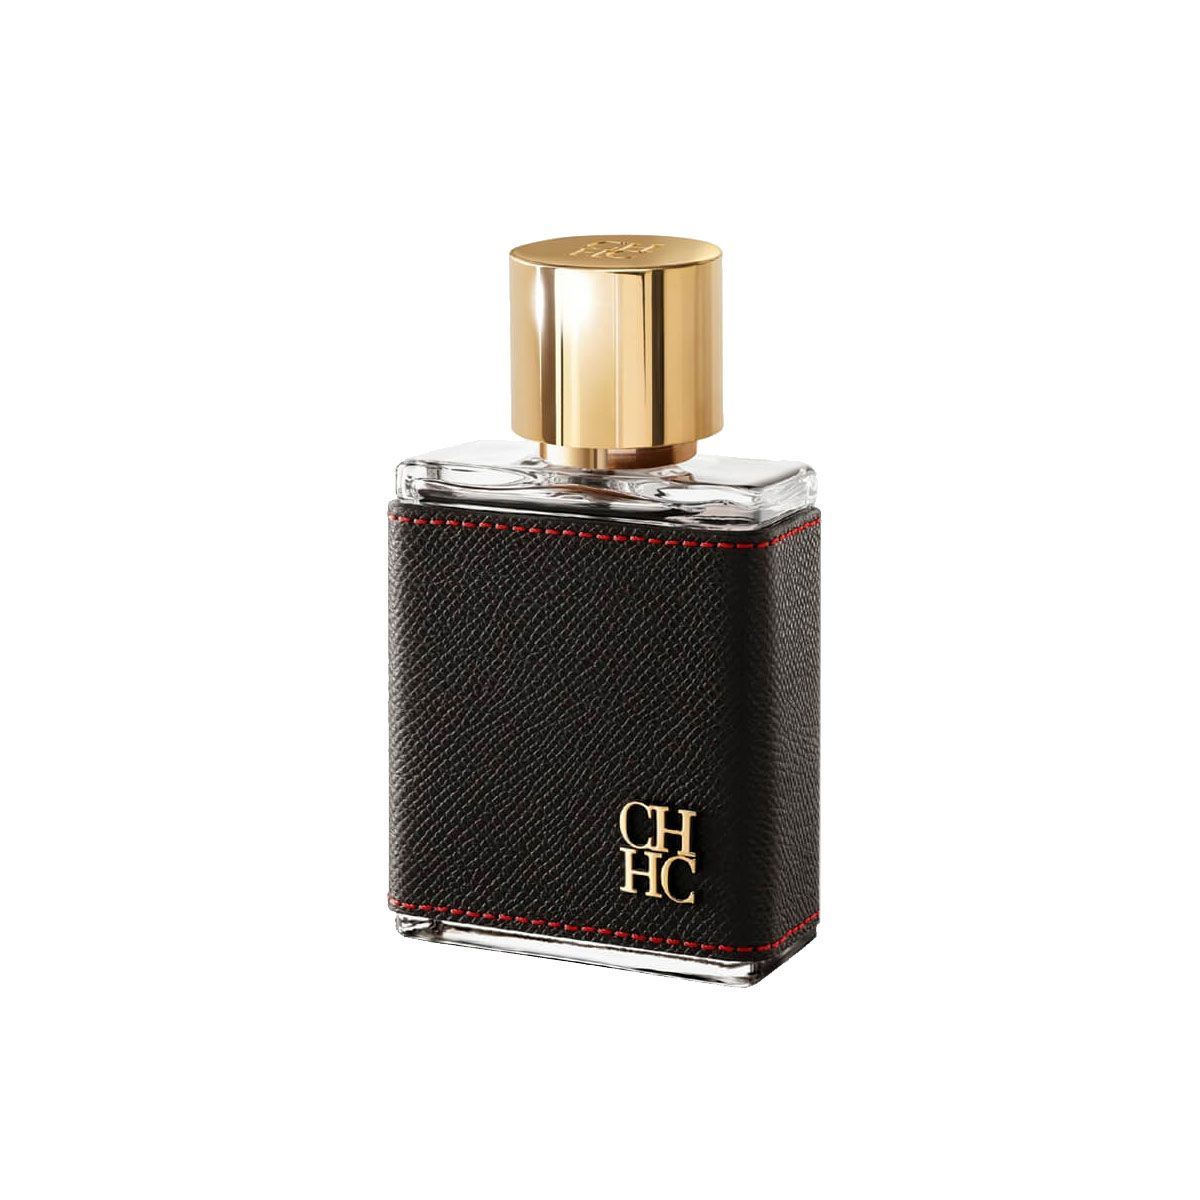 CH Men - Carolina Herrera Eau de Toilette - Perfume Masculino 200ml